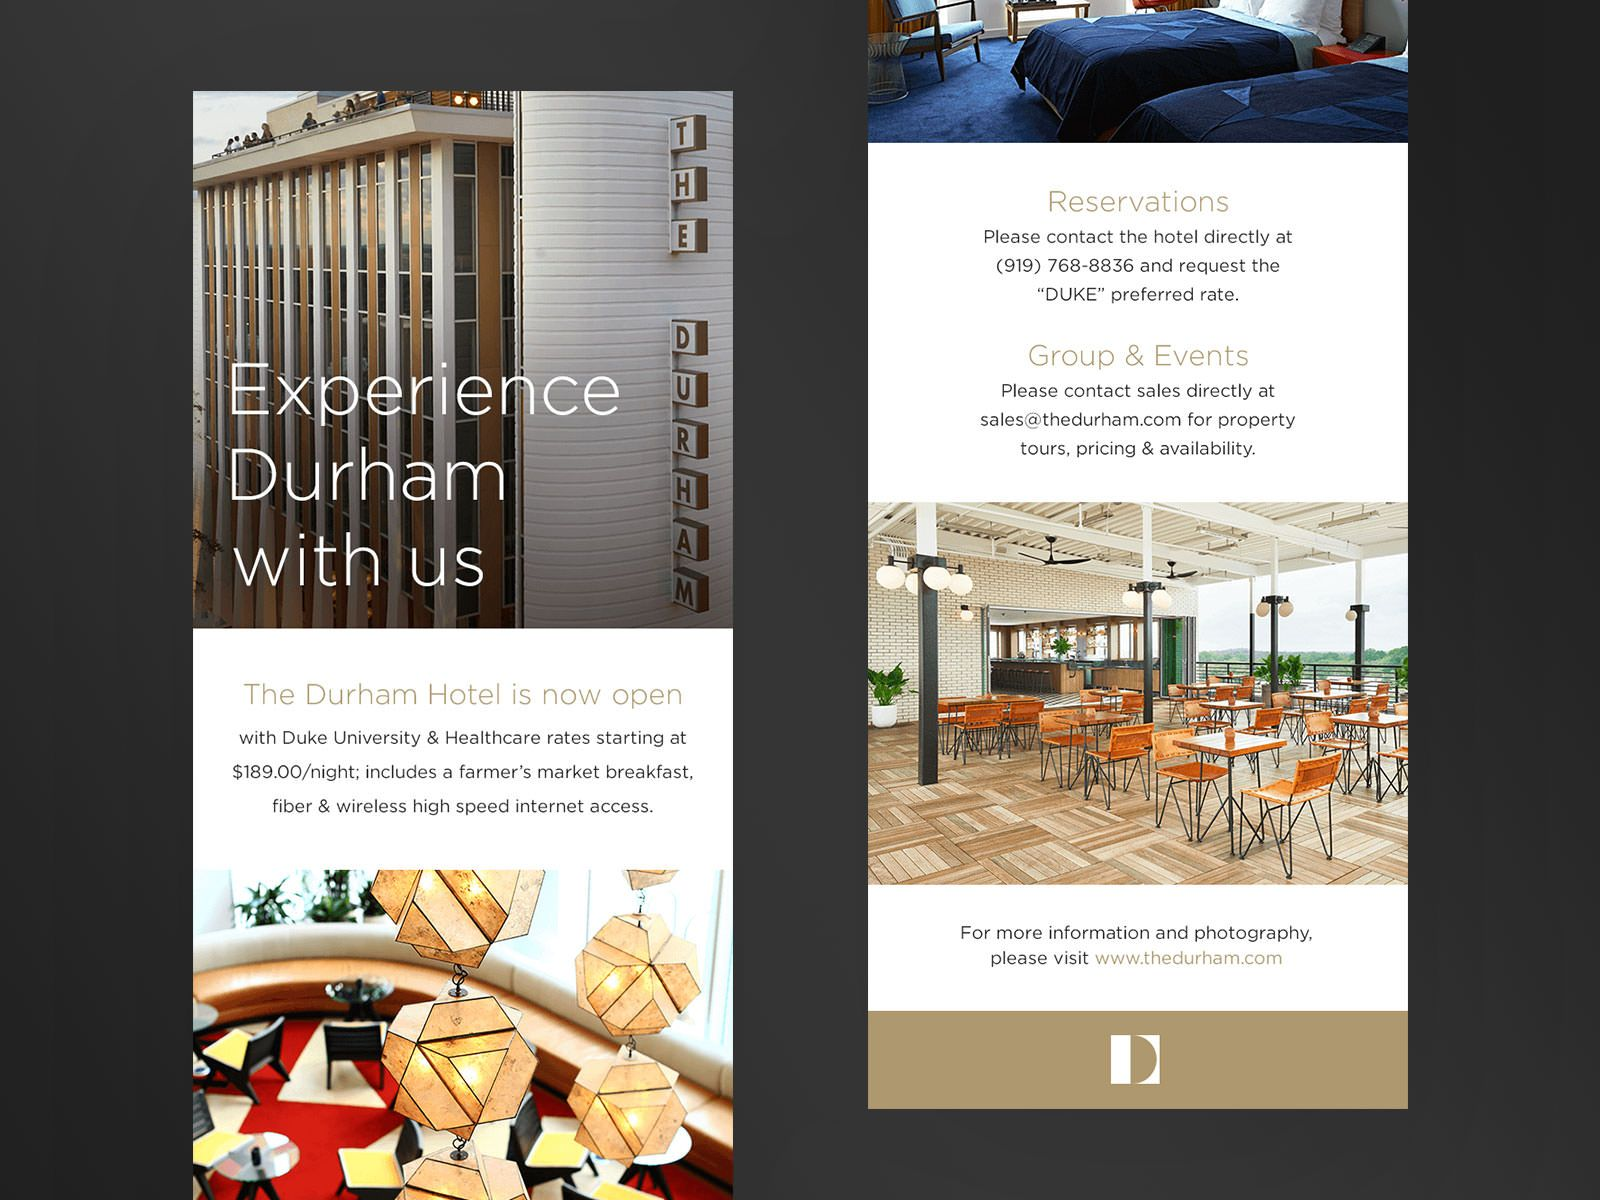 The Durham Hotel Email Marketing By Mrc Raleigh Durham Hotel Hotel Durham